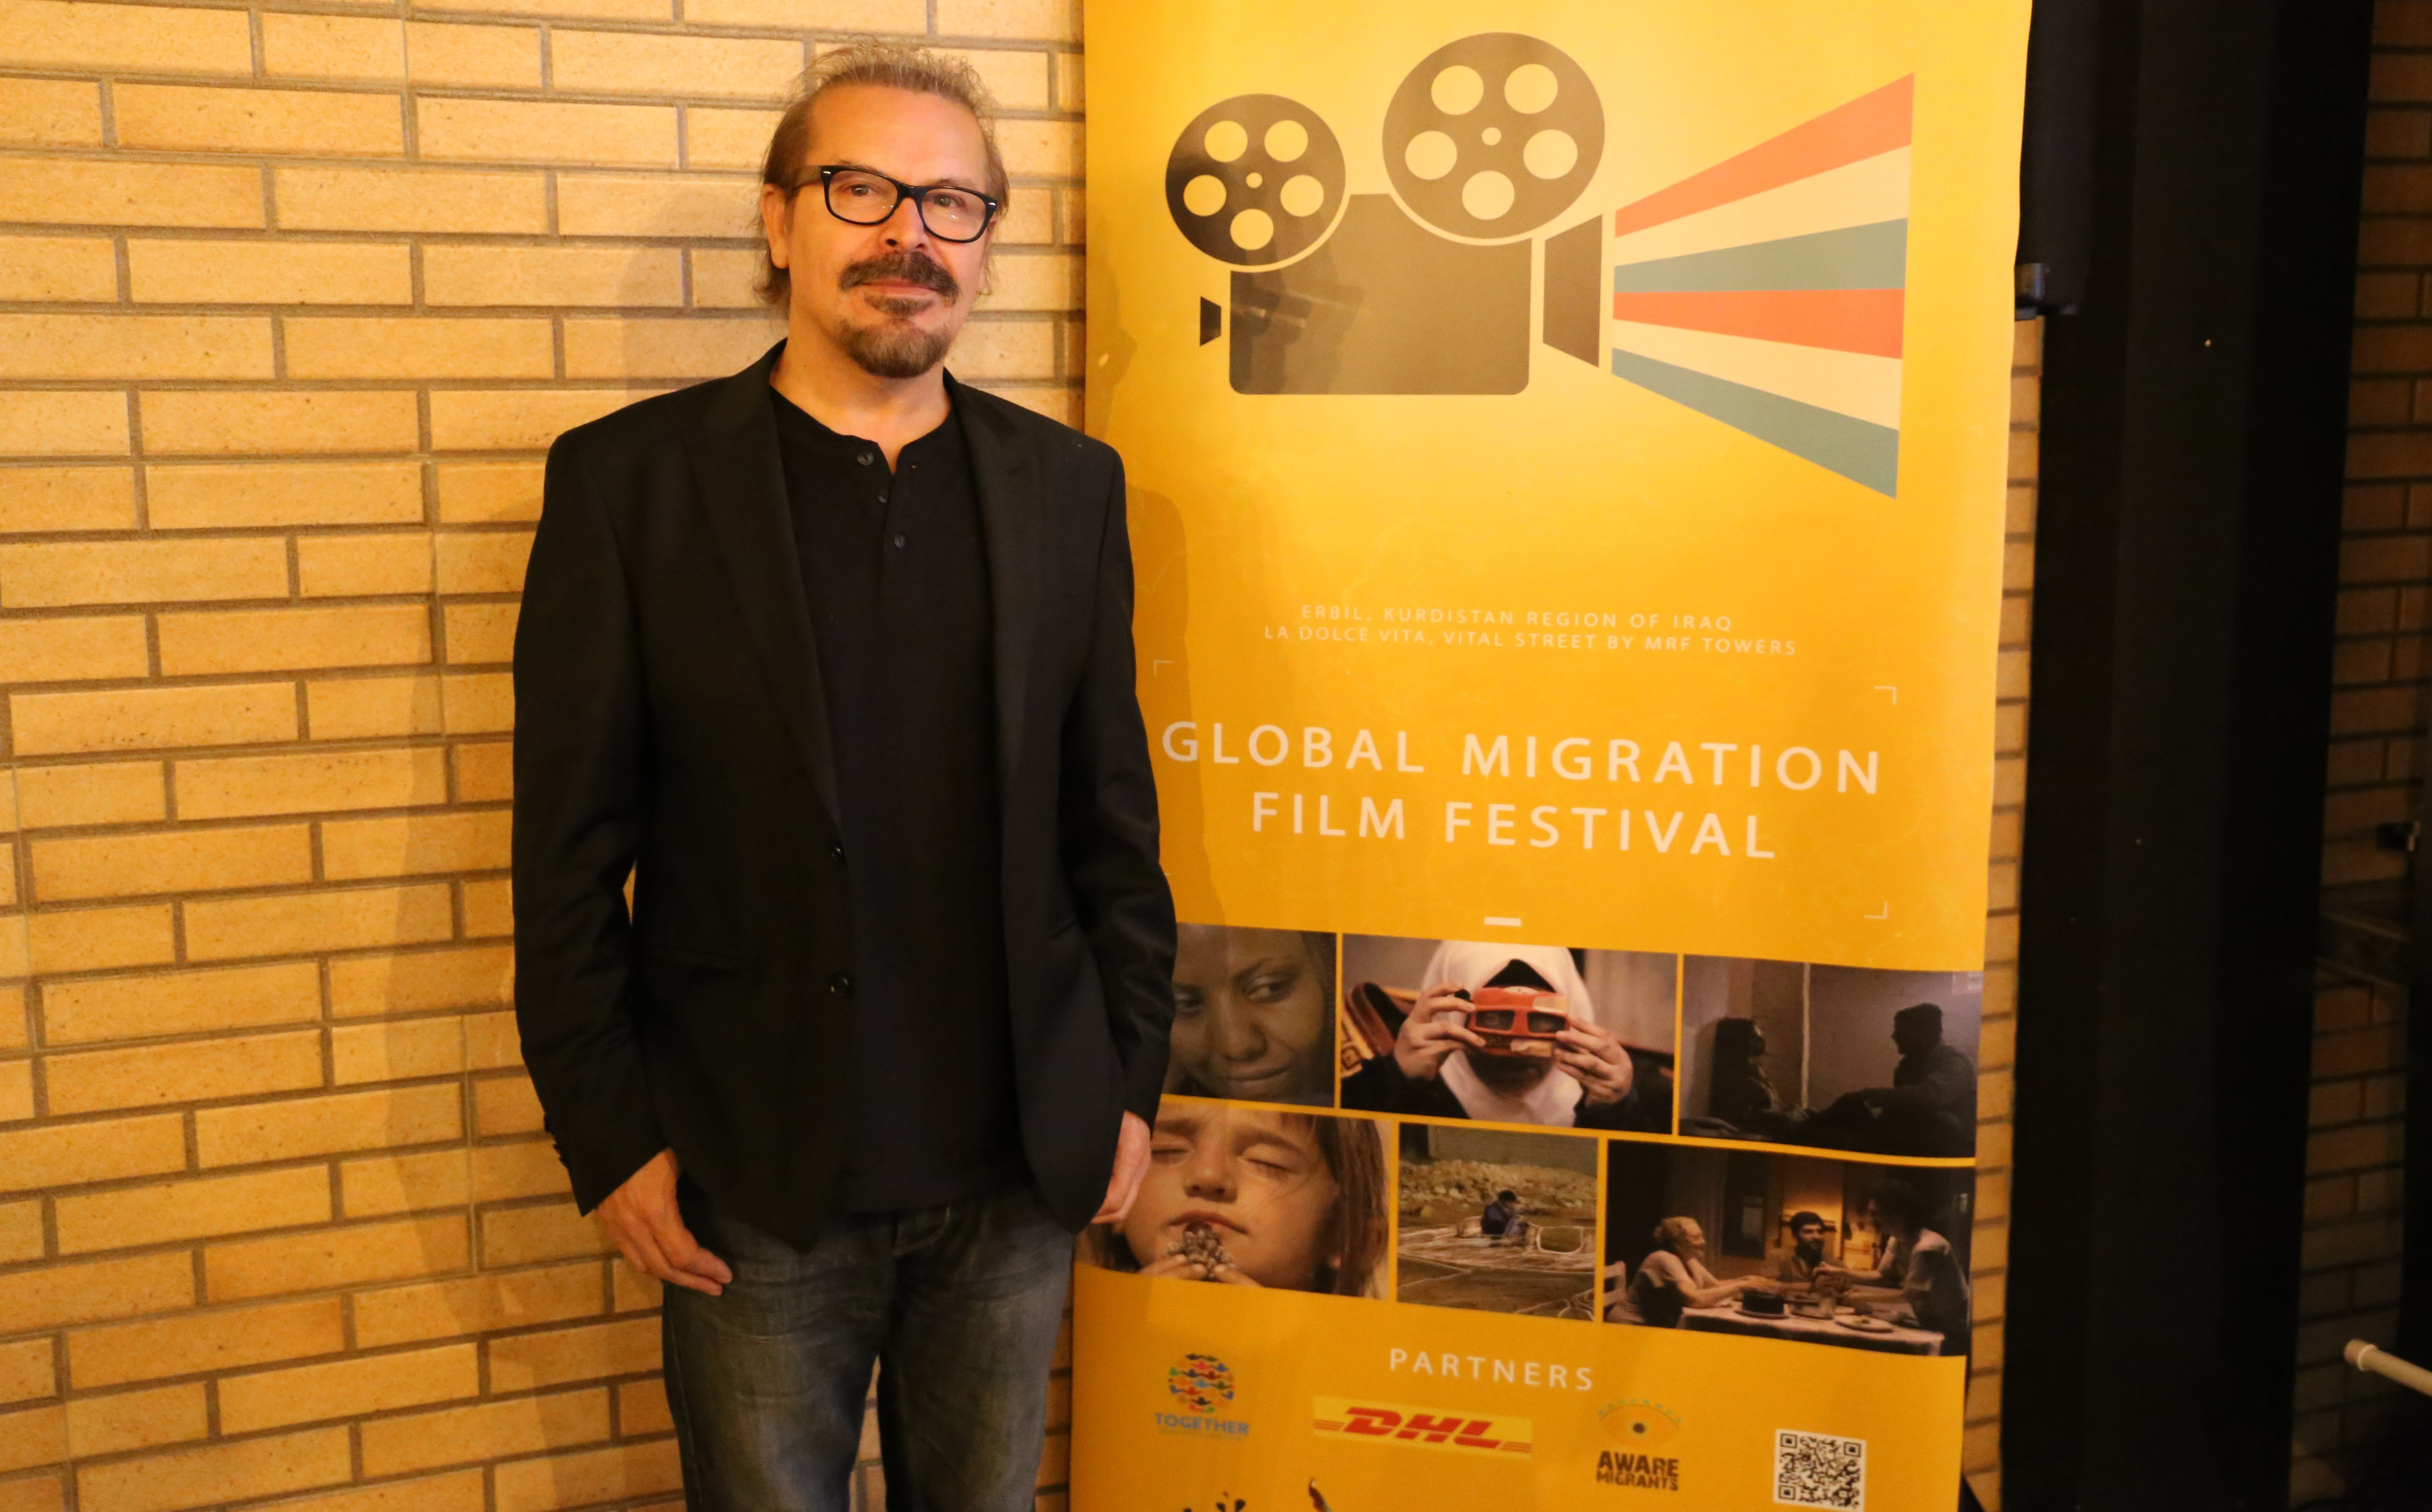 Jano Rosebiani is hosting the Global Migration Film Festival in Erbil. Photo: Mohammad Abbas